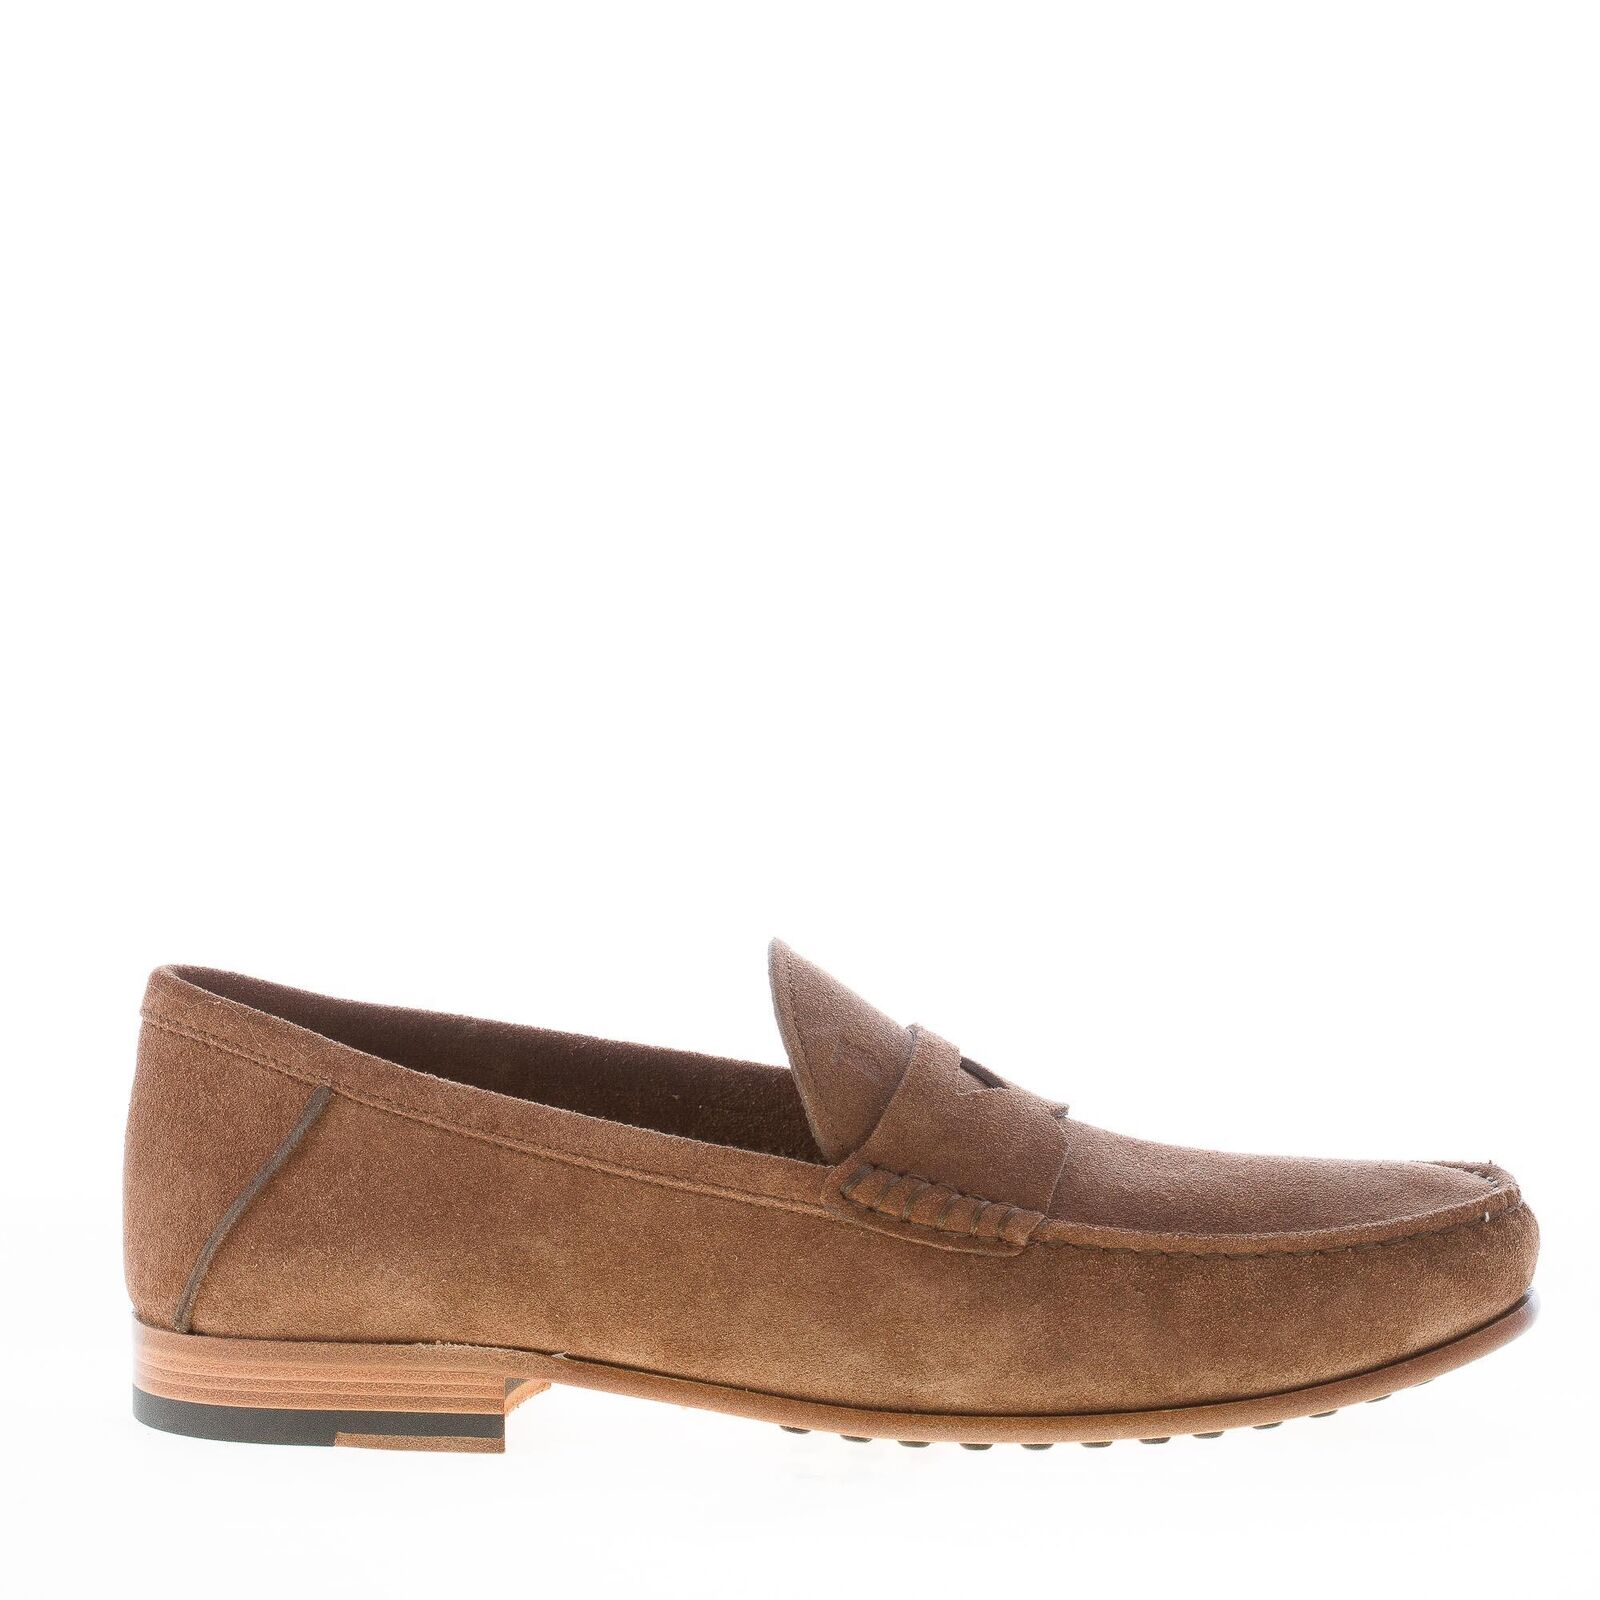 TOD'S herren schuhe men shoes brown suede penny loafer leather sole